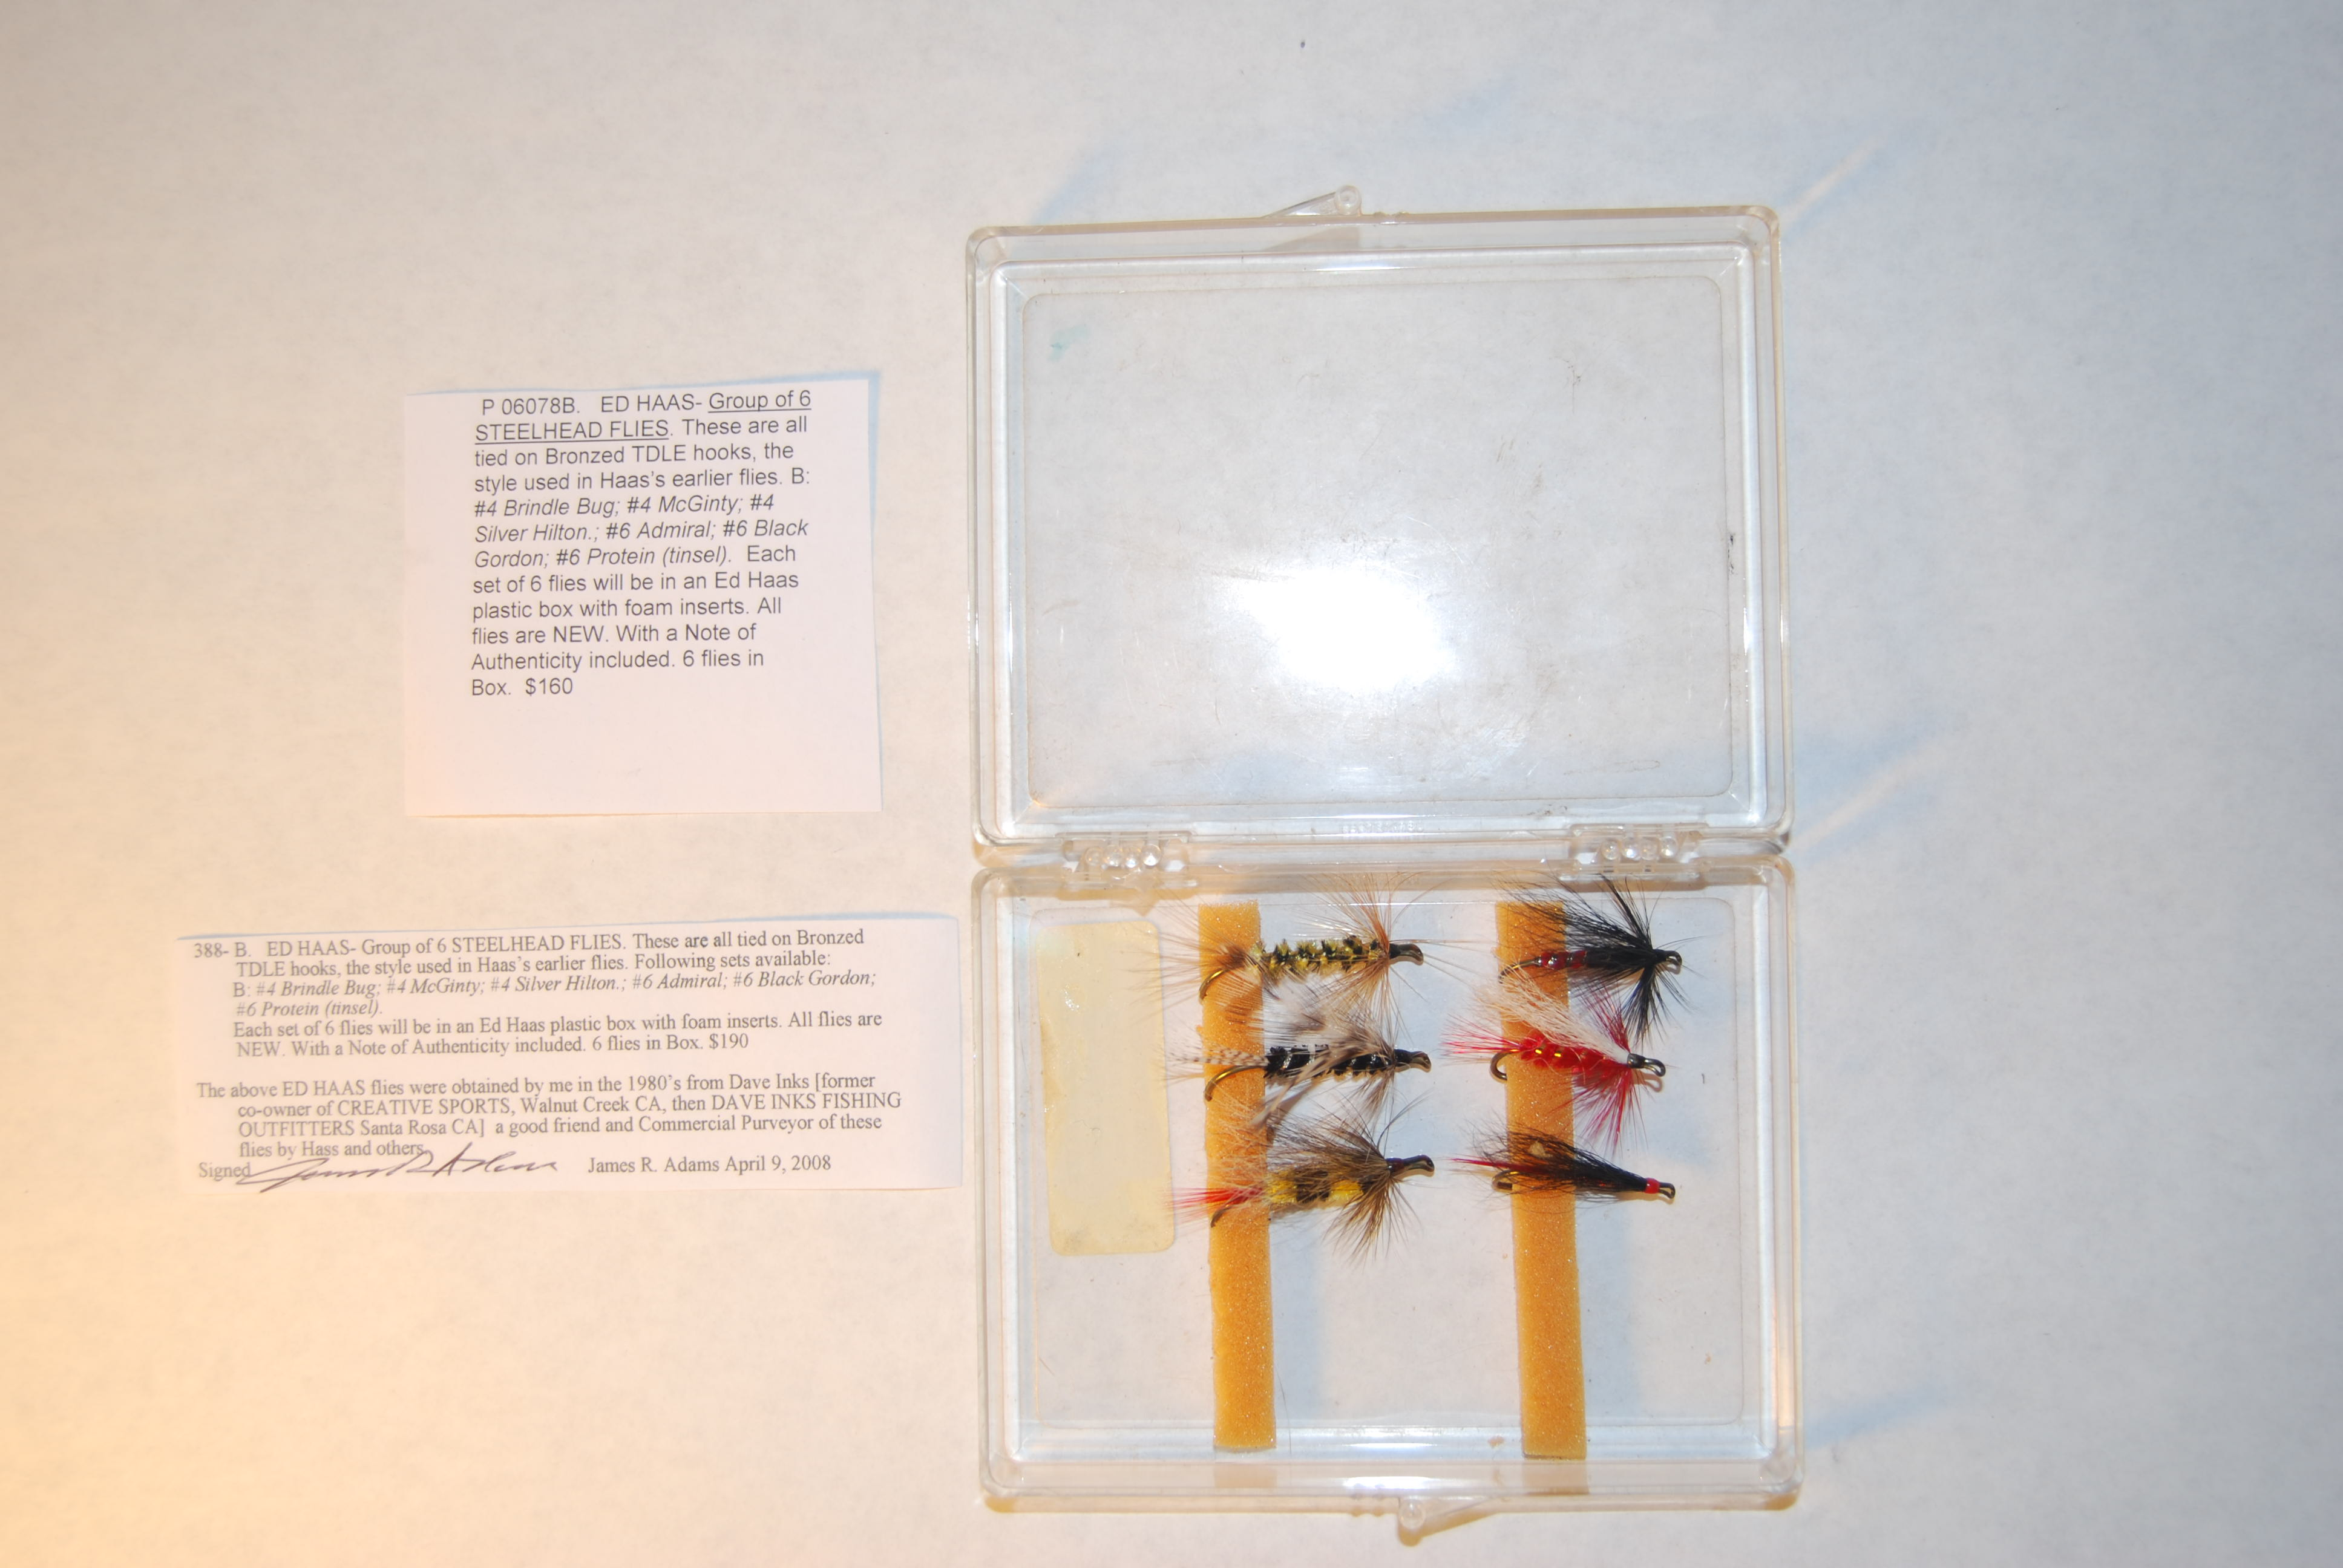 Image for ED HAAS- Group of 6 STEELHEAD FLIES.